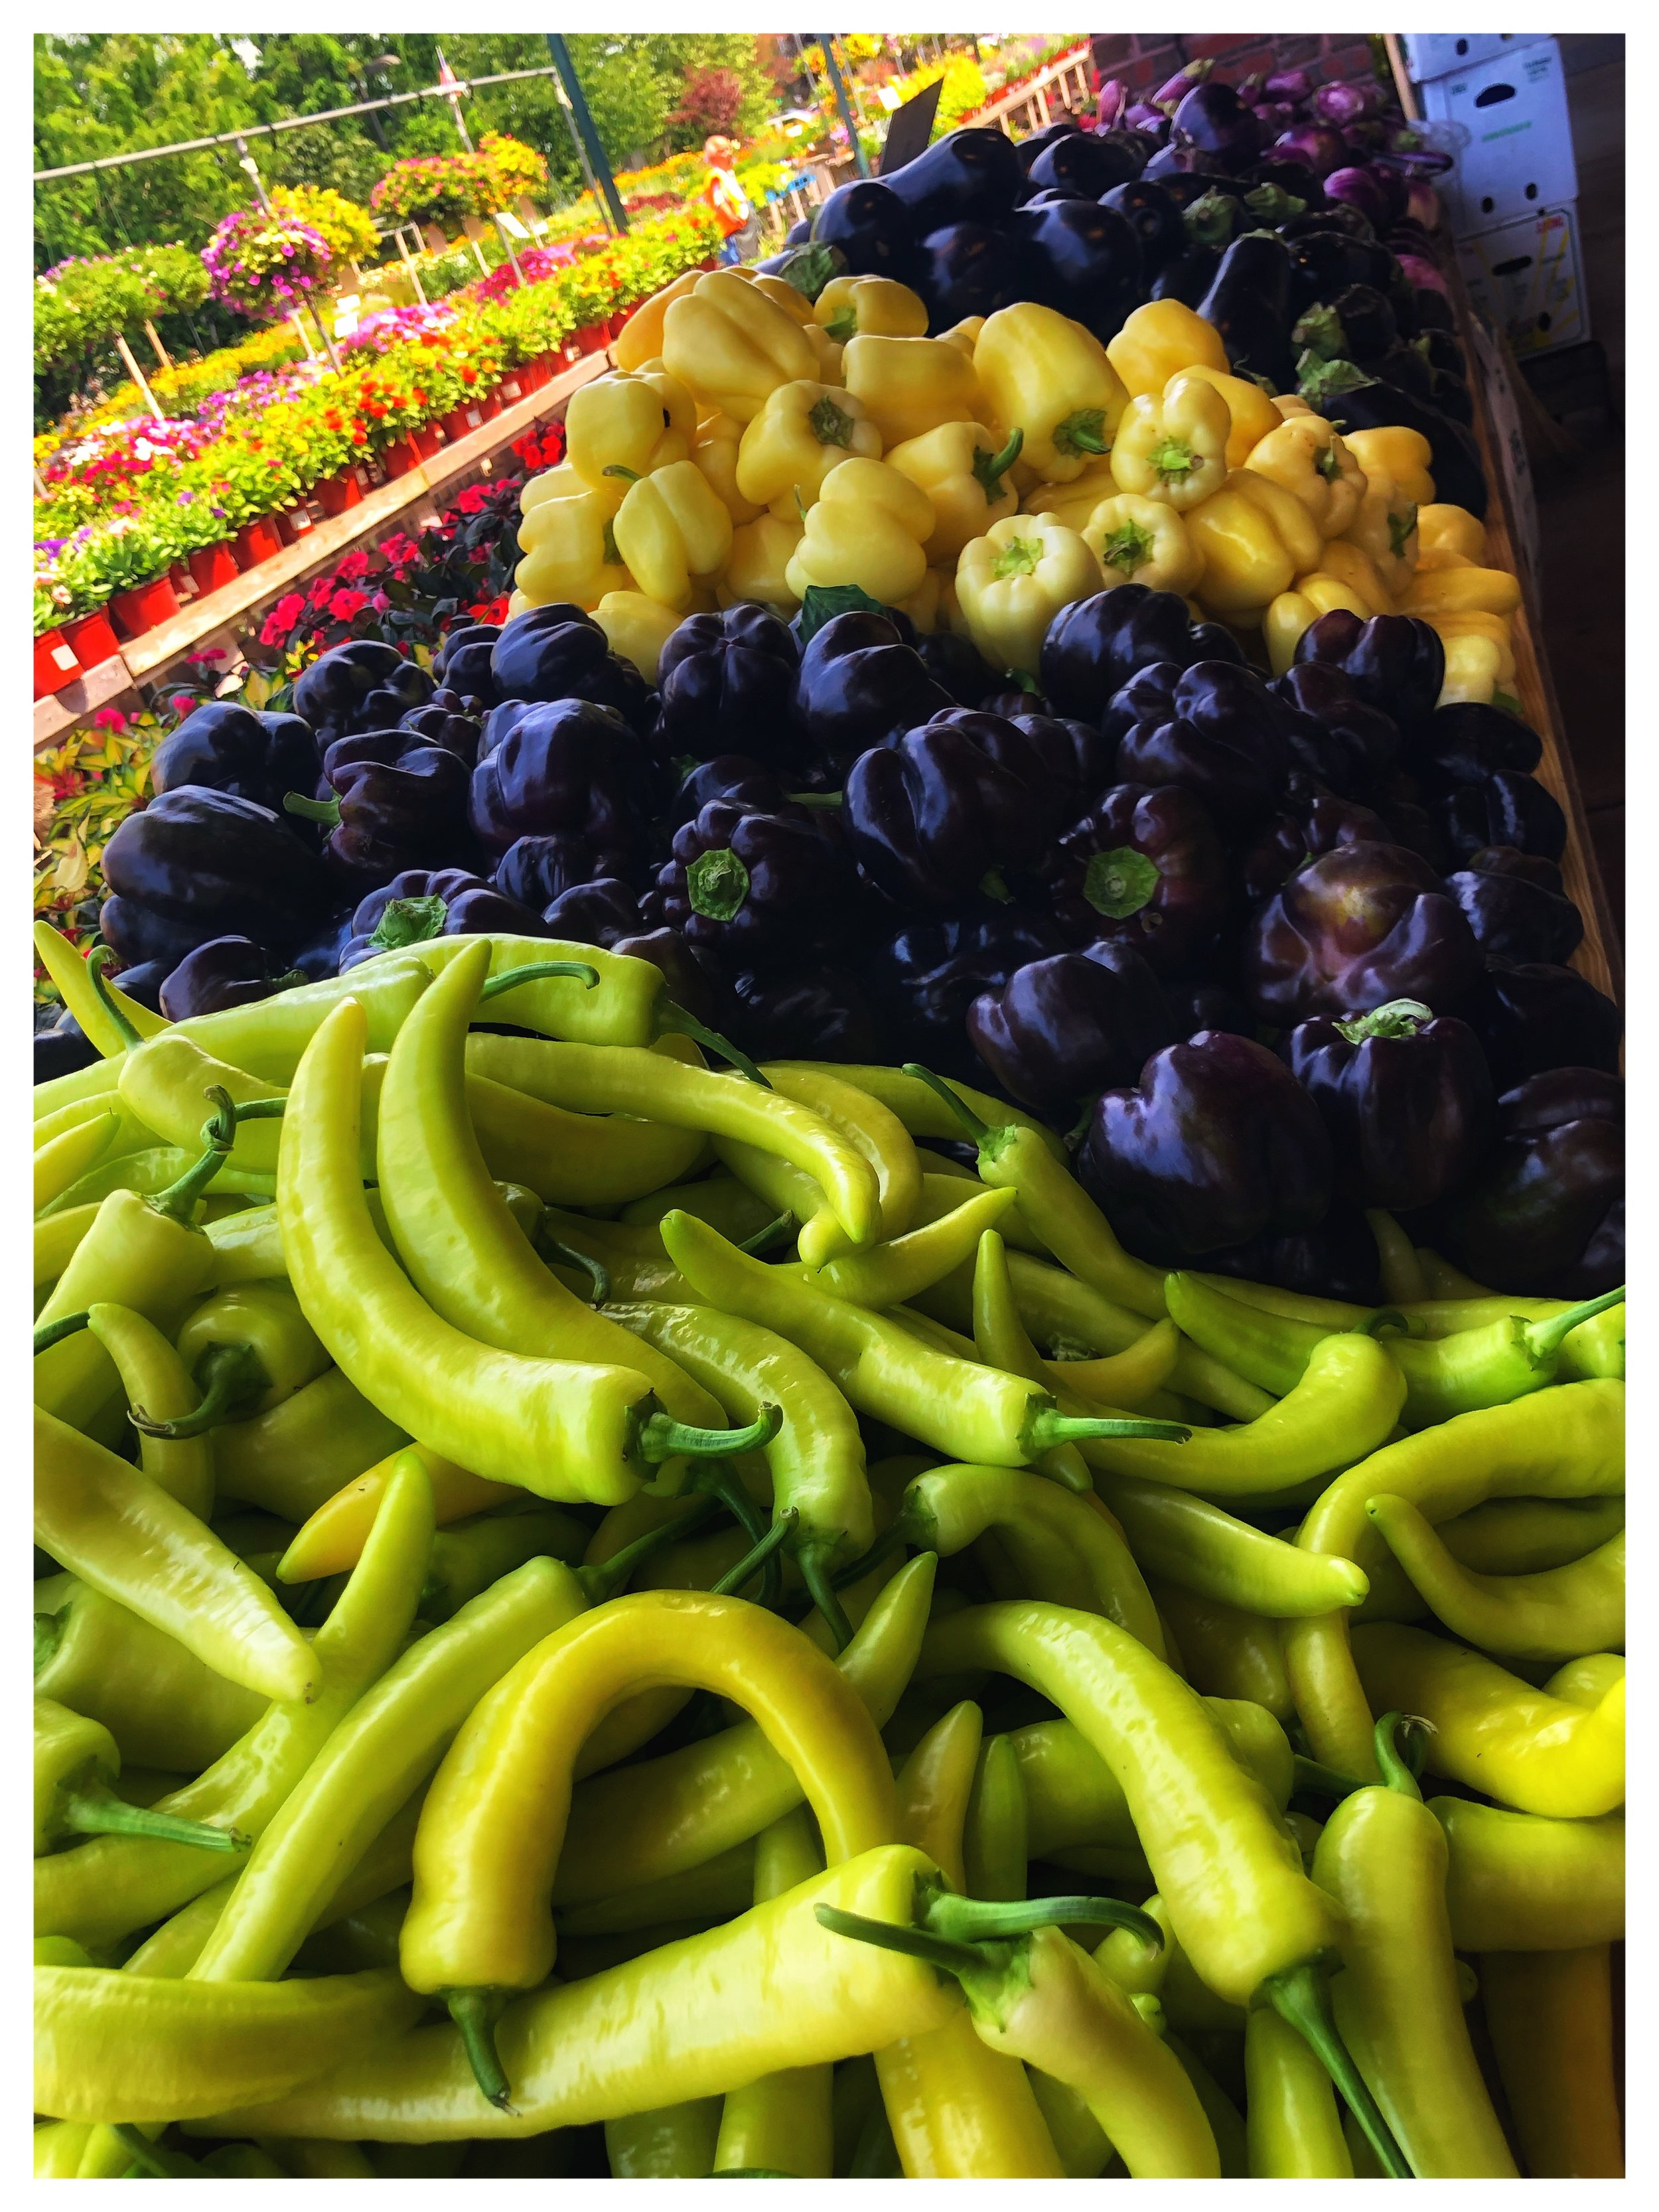 Locally grown peppers and eggplants at Russo's!